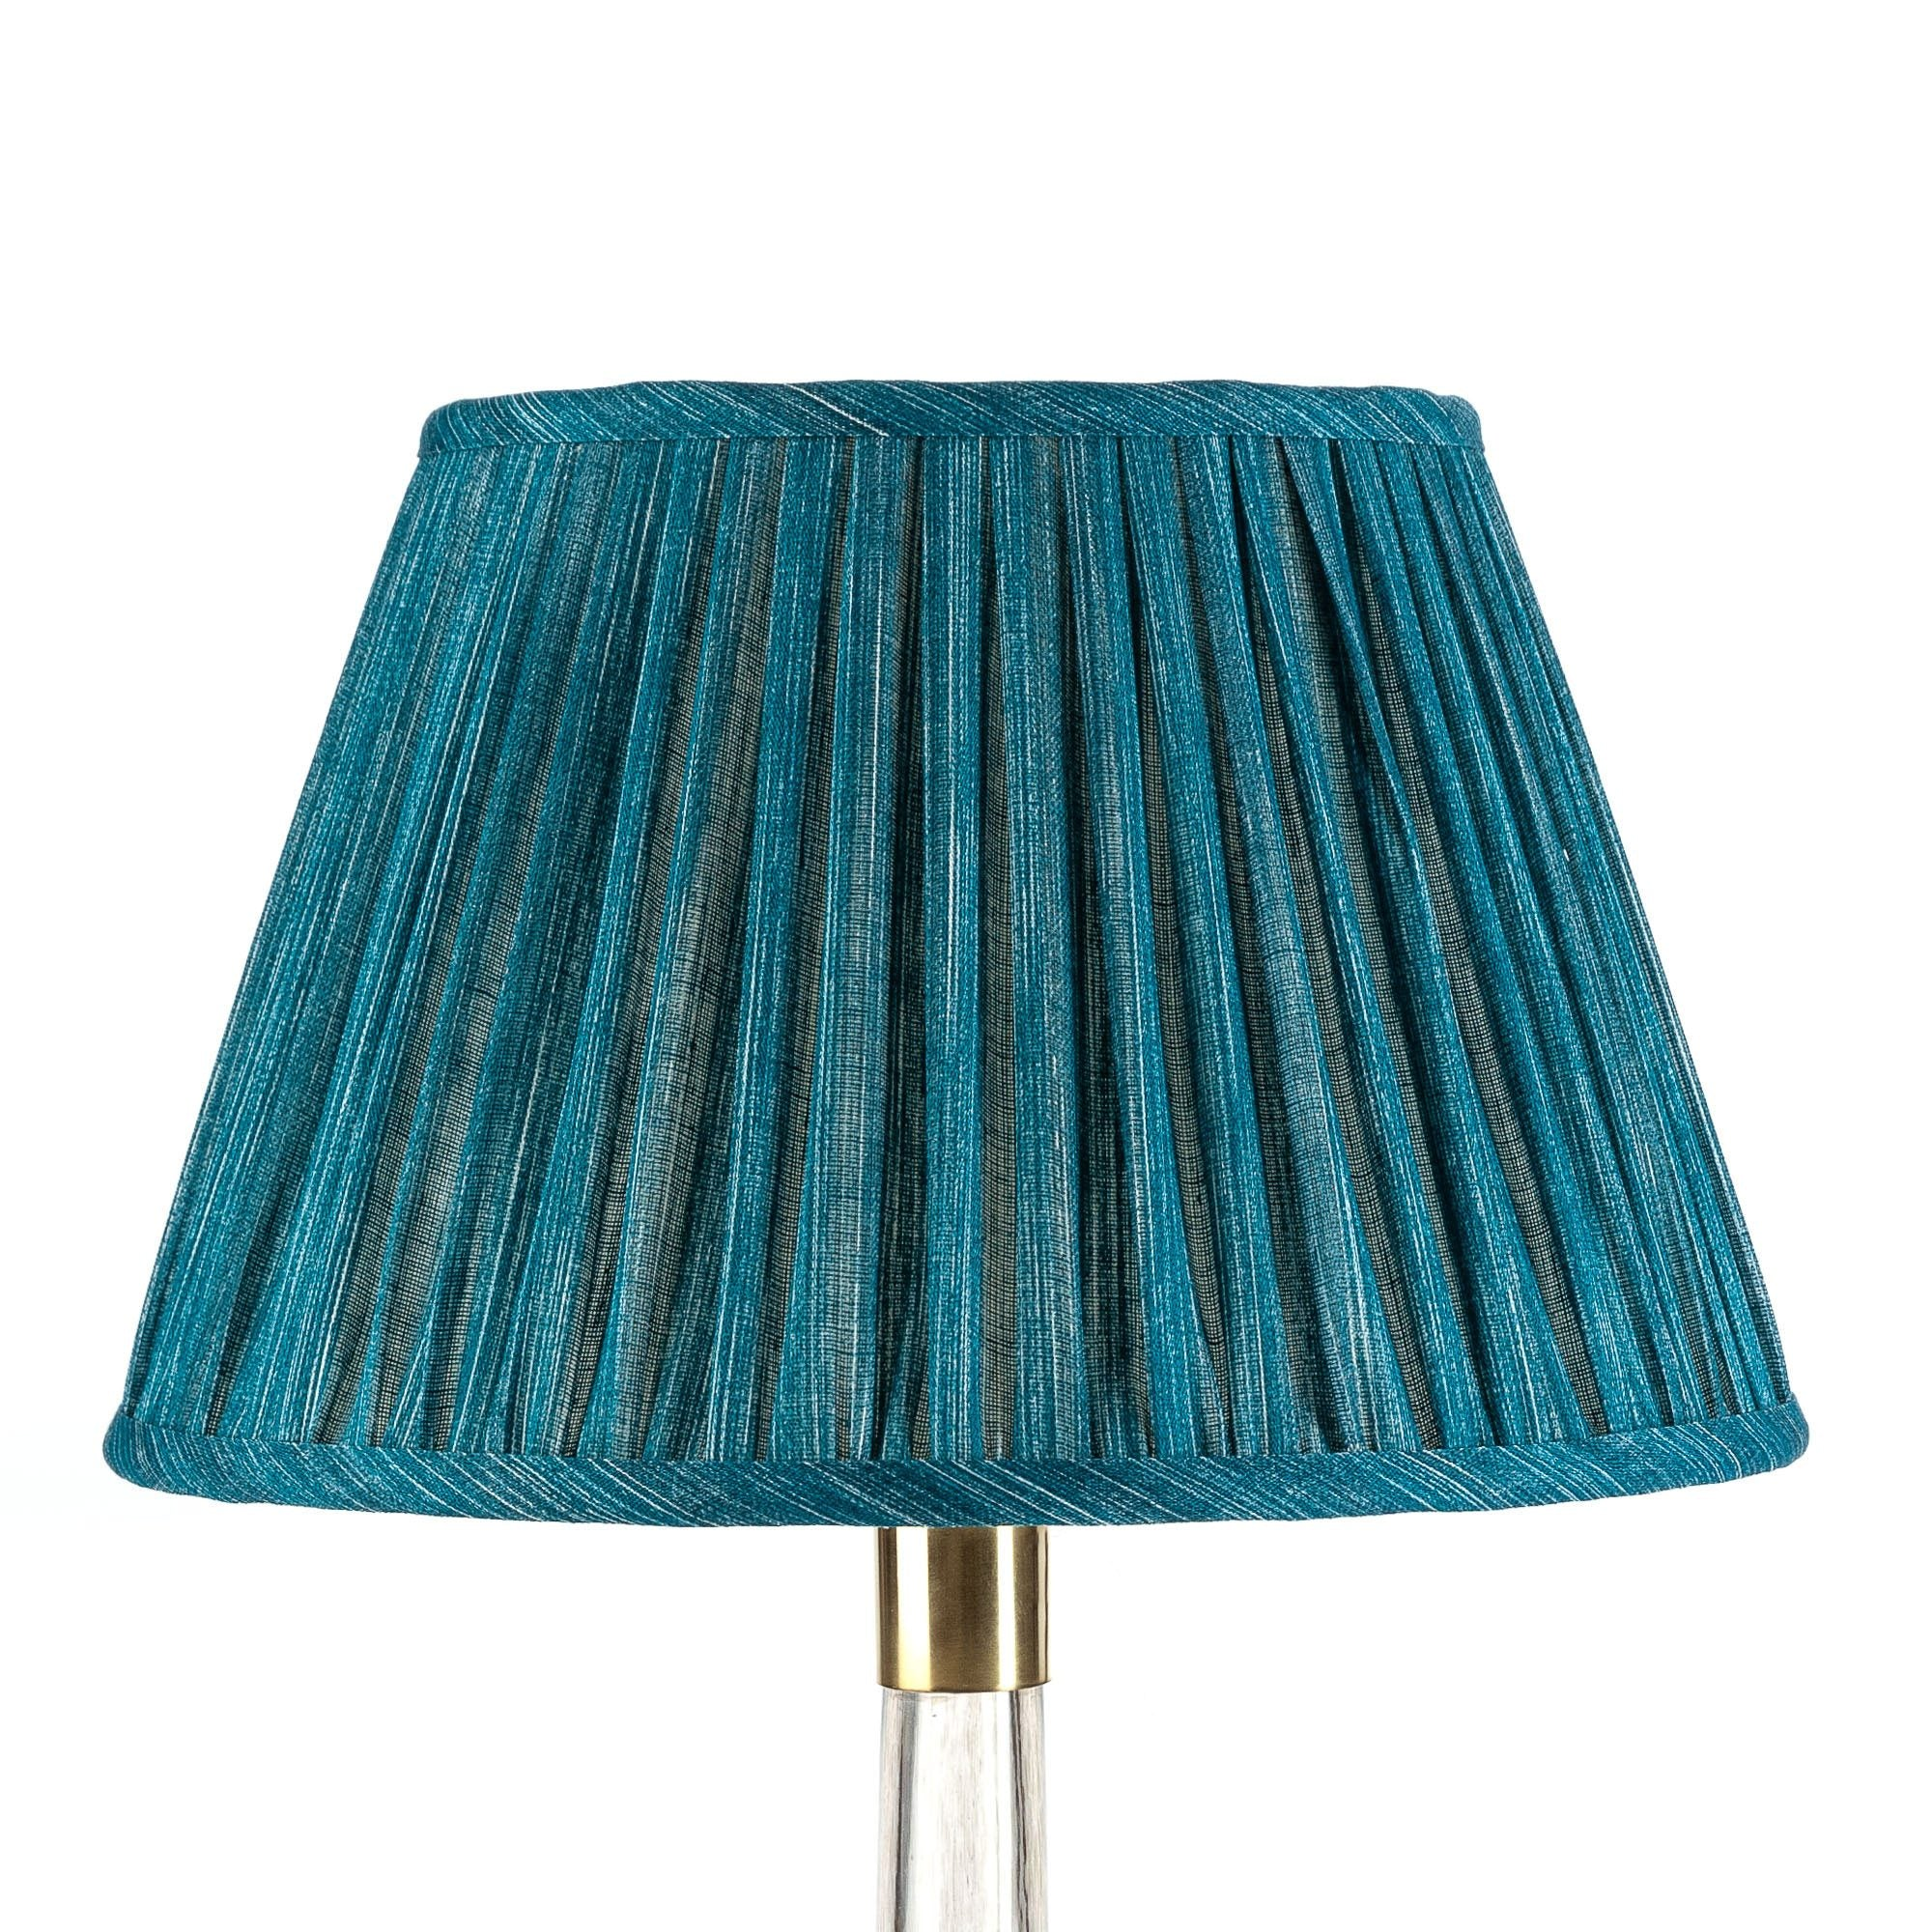 Fermoie Lampshade in Suede Shoes